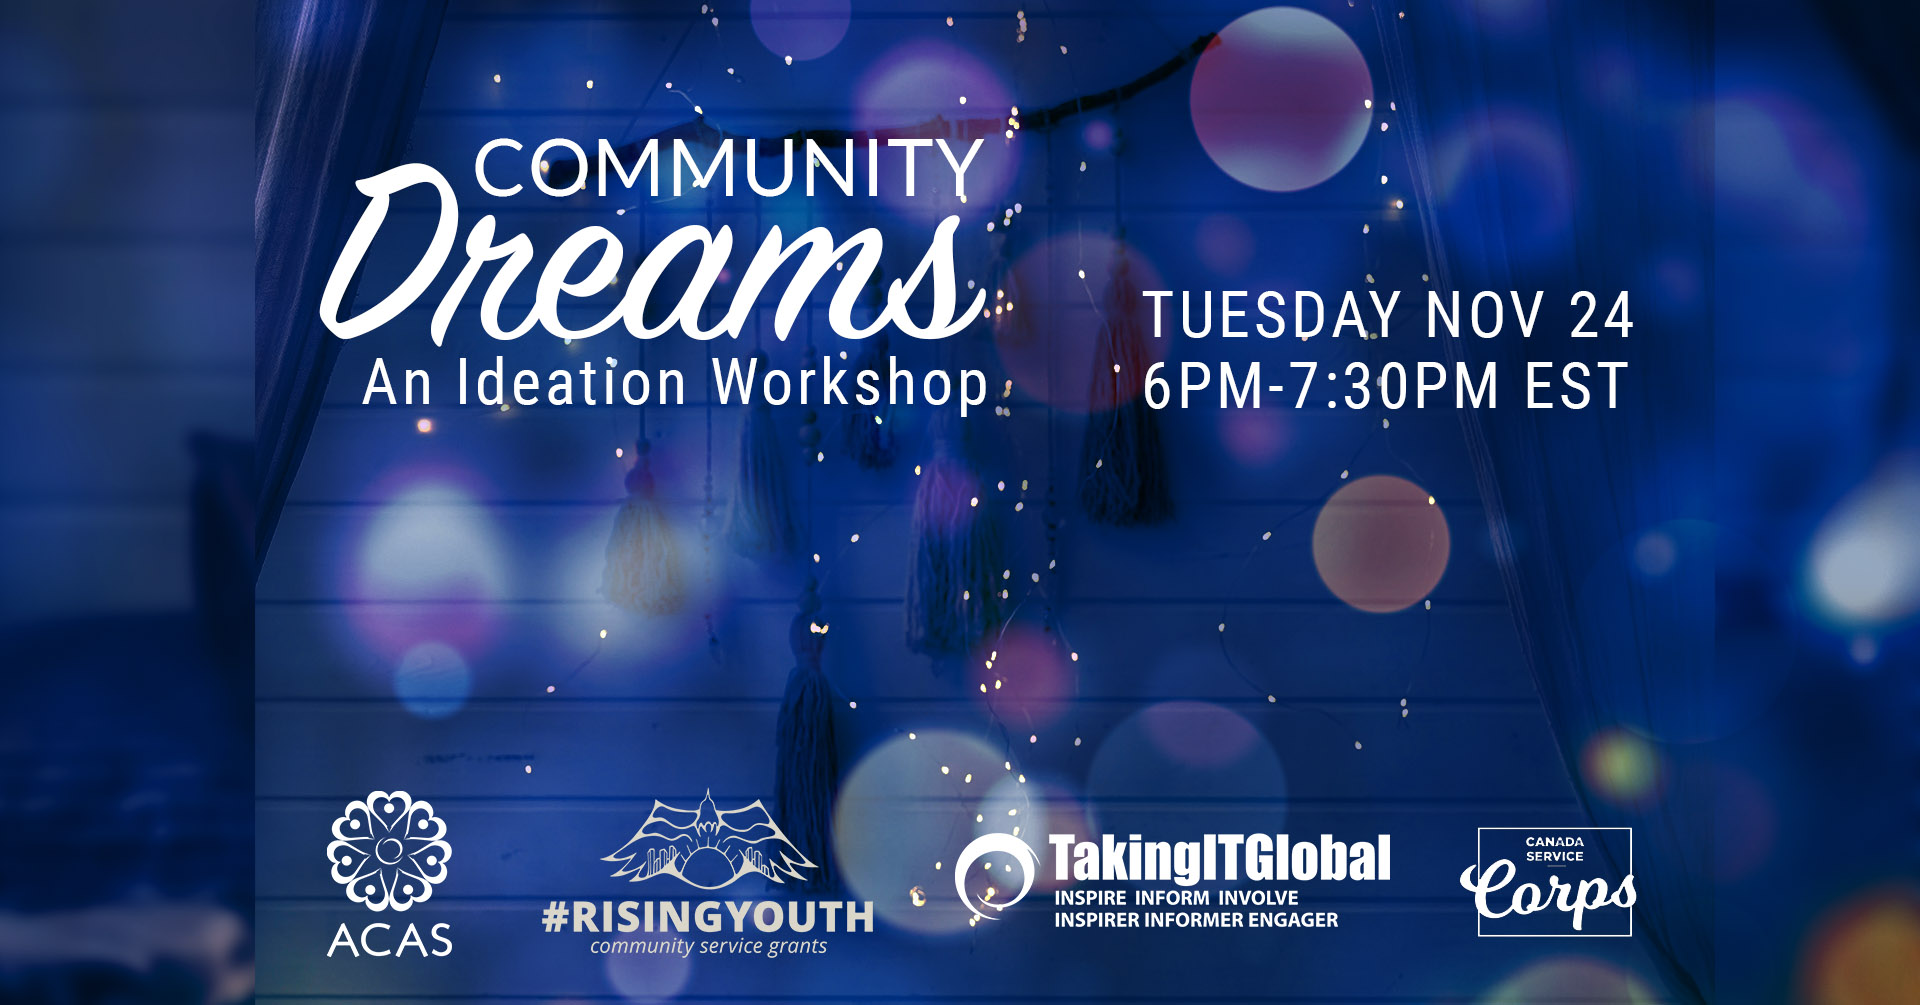 Poster for Community Dreams RisingYouth Ideation Workshop